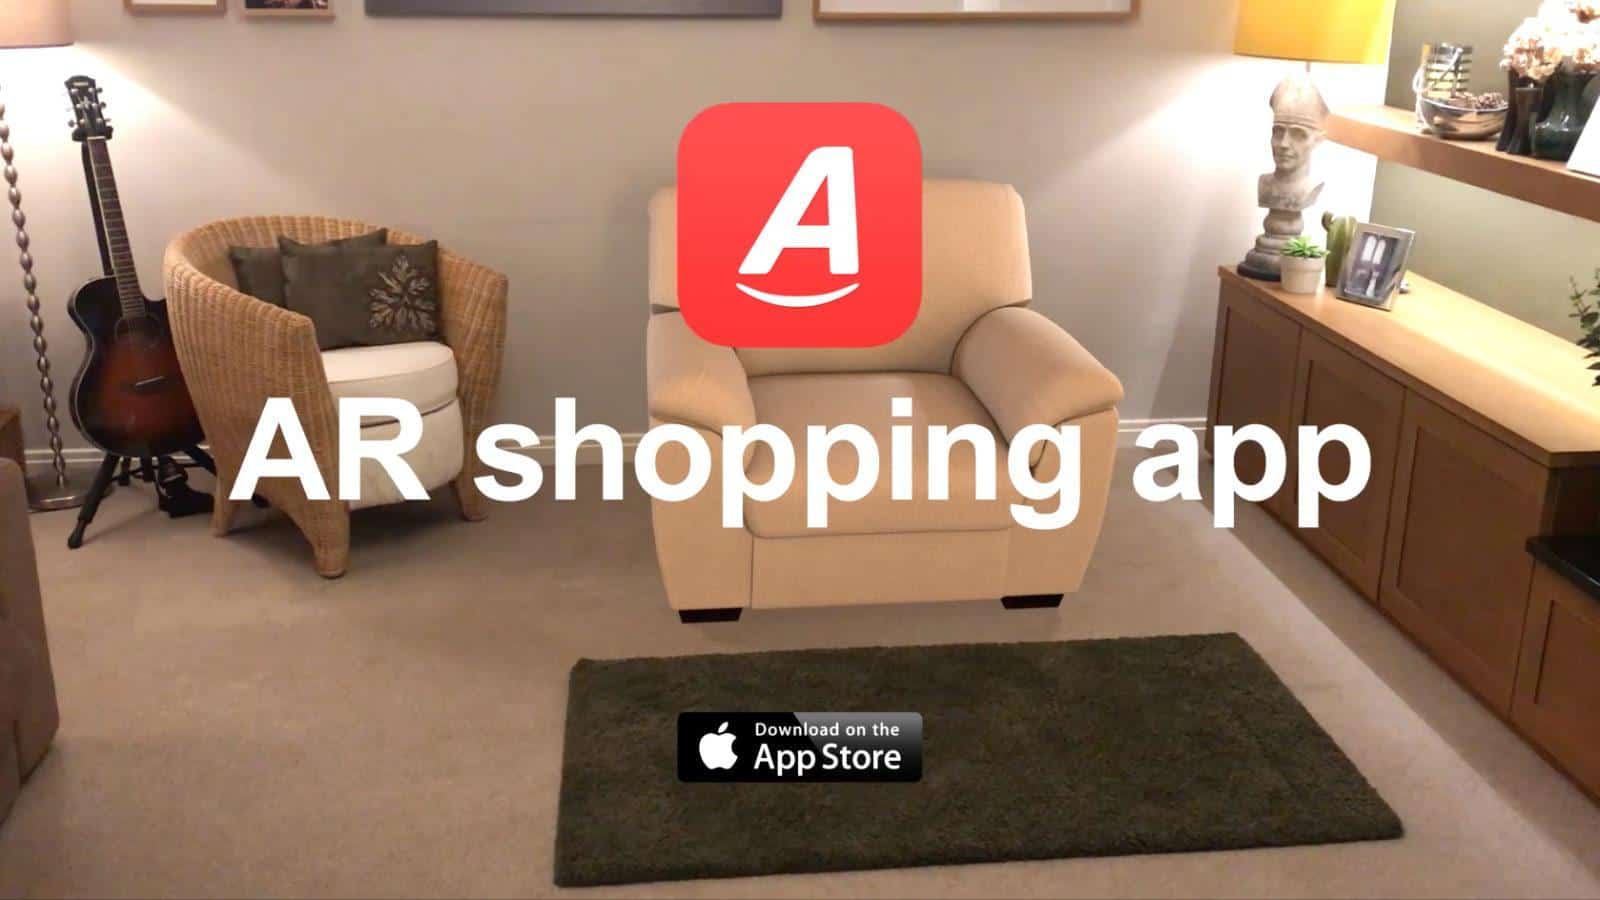 Argos augmented reality shopping app 2